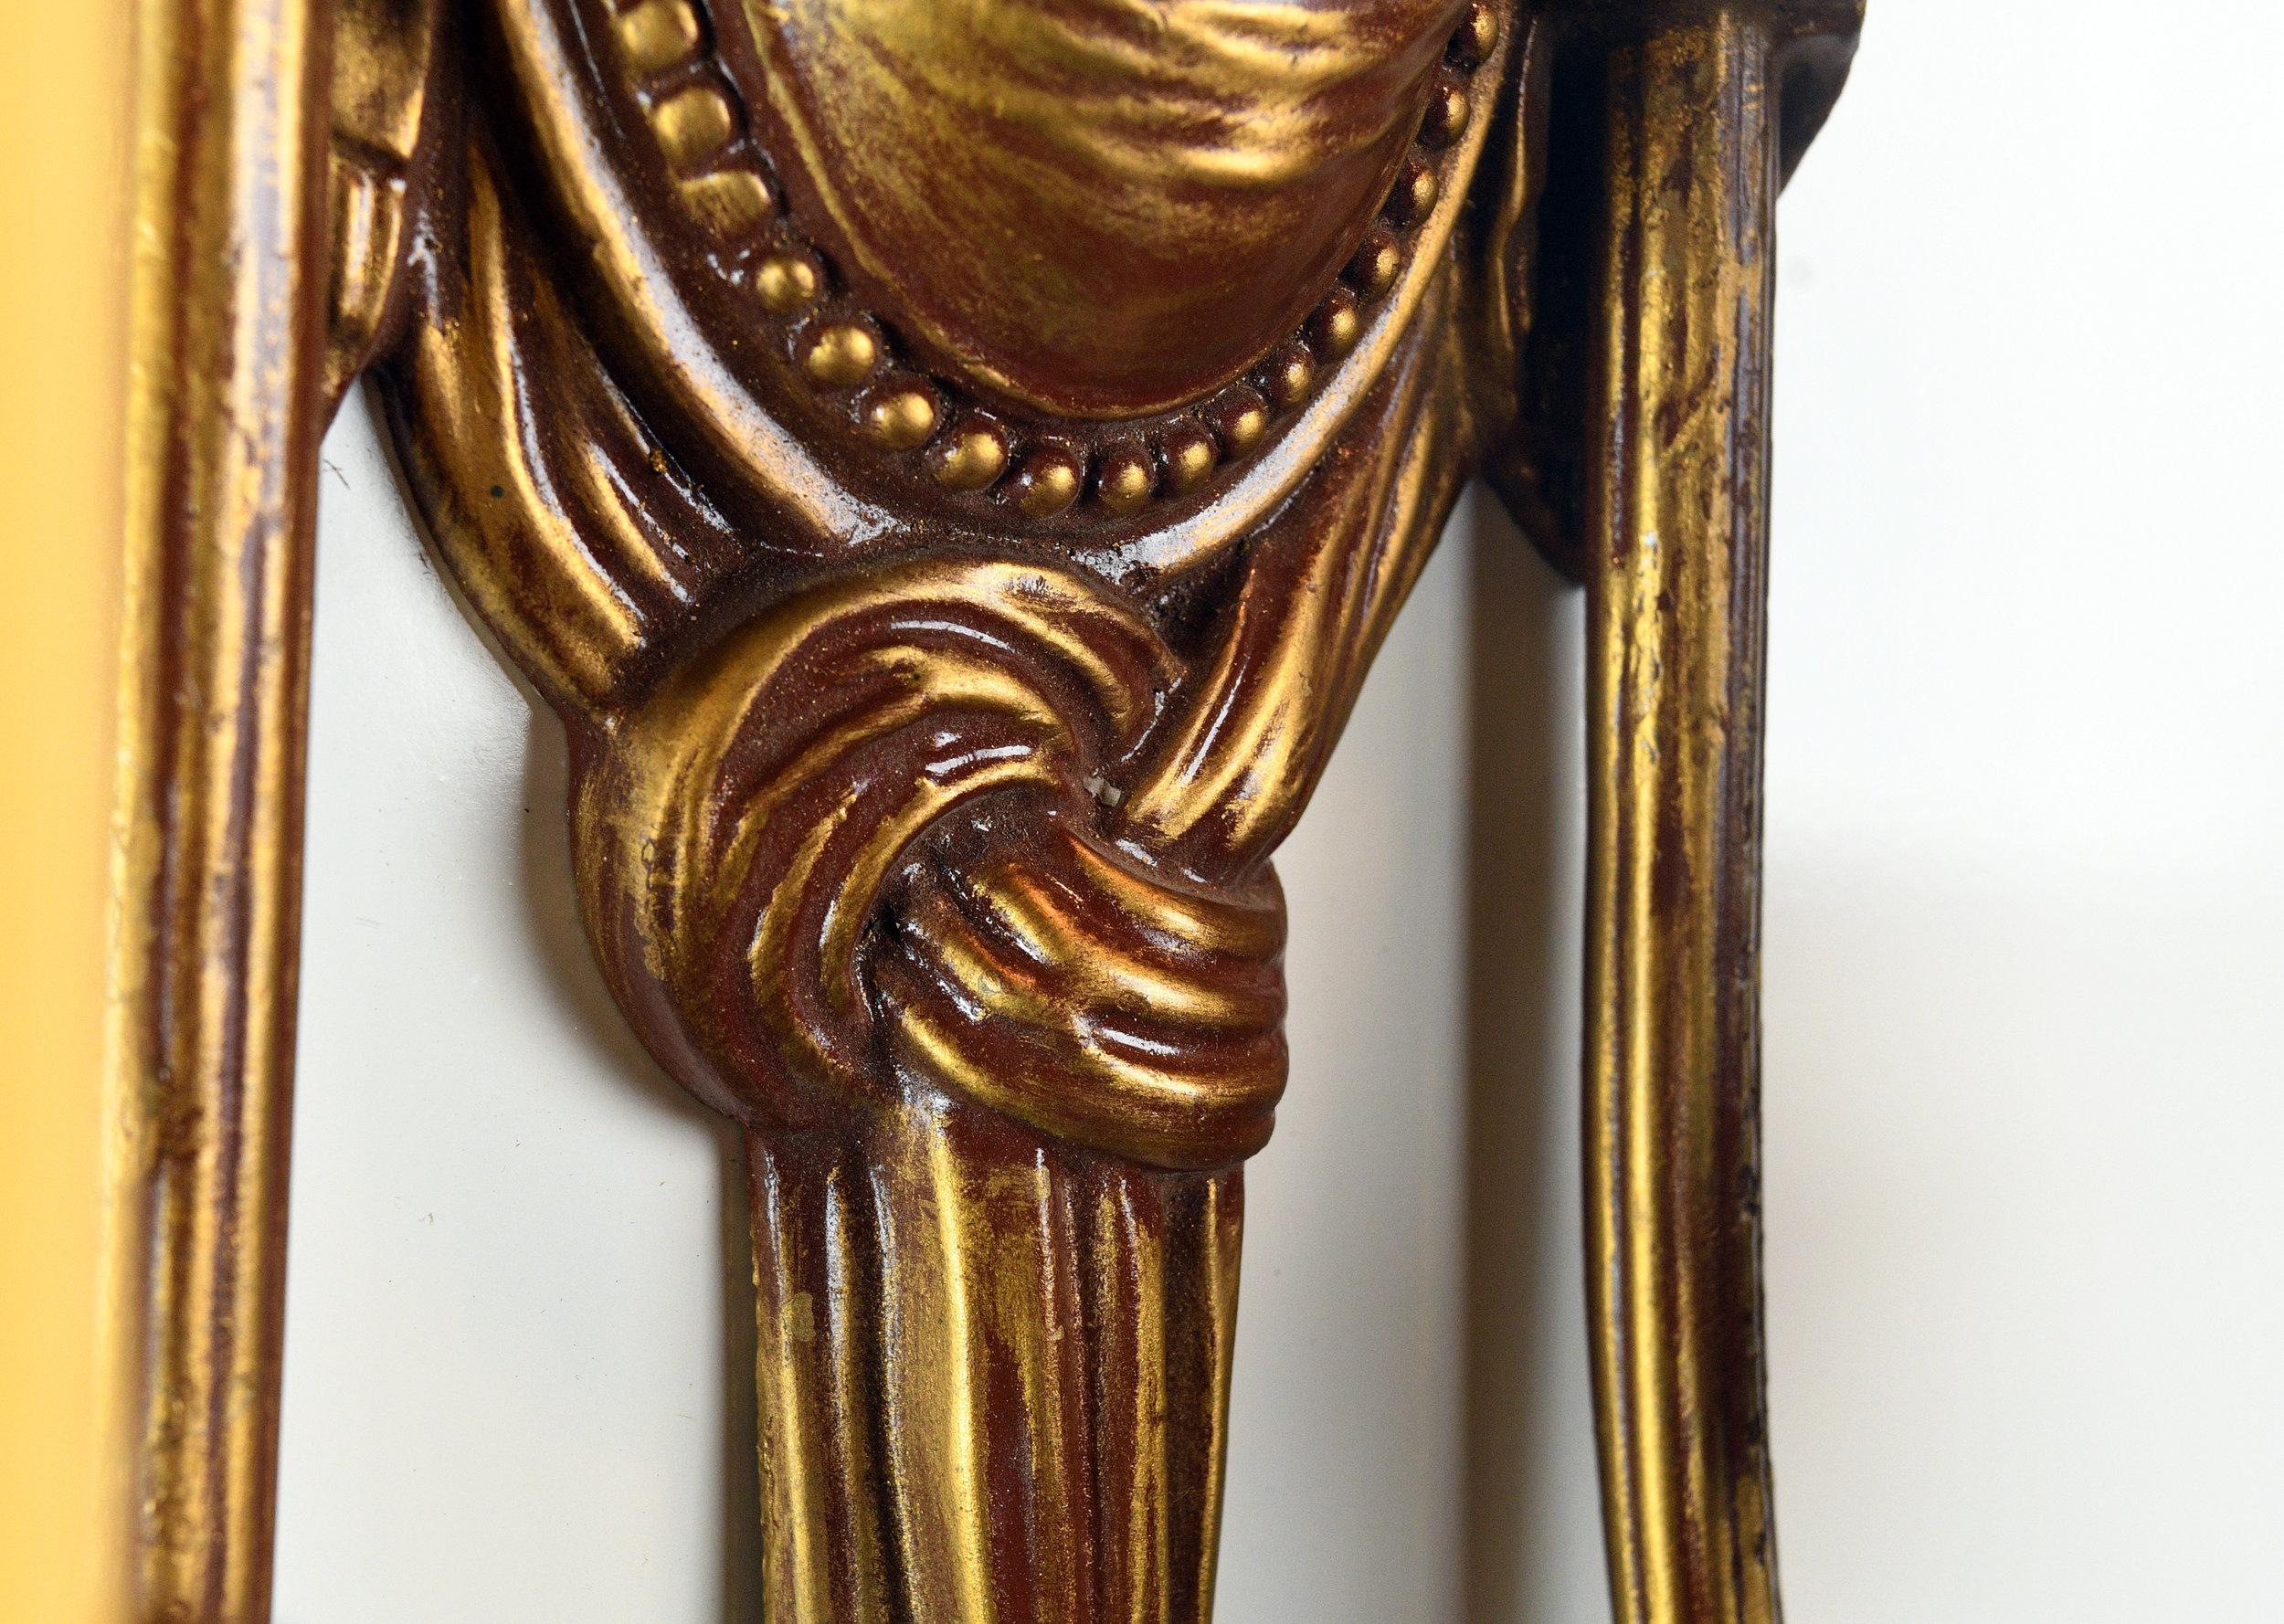 41018-french-2-arm-cameo-sconce-16.jpg